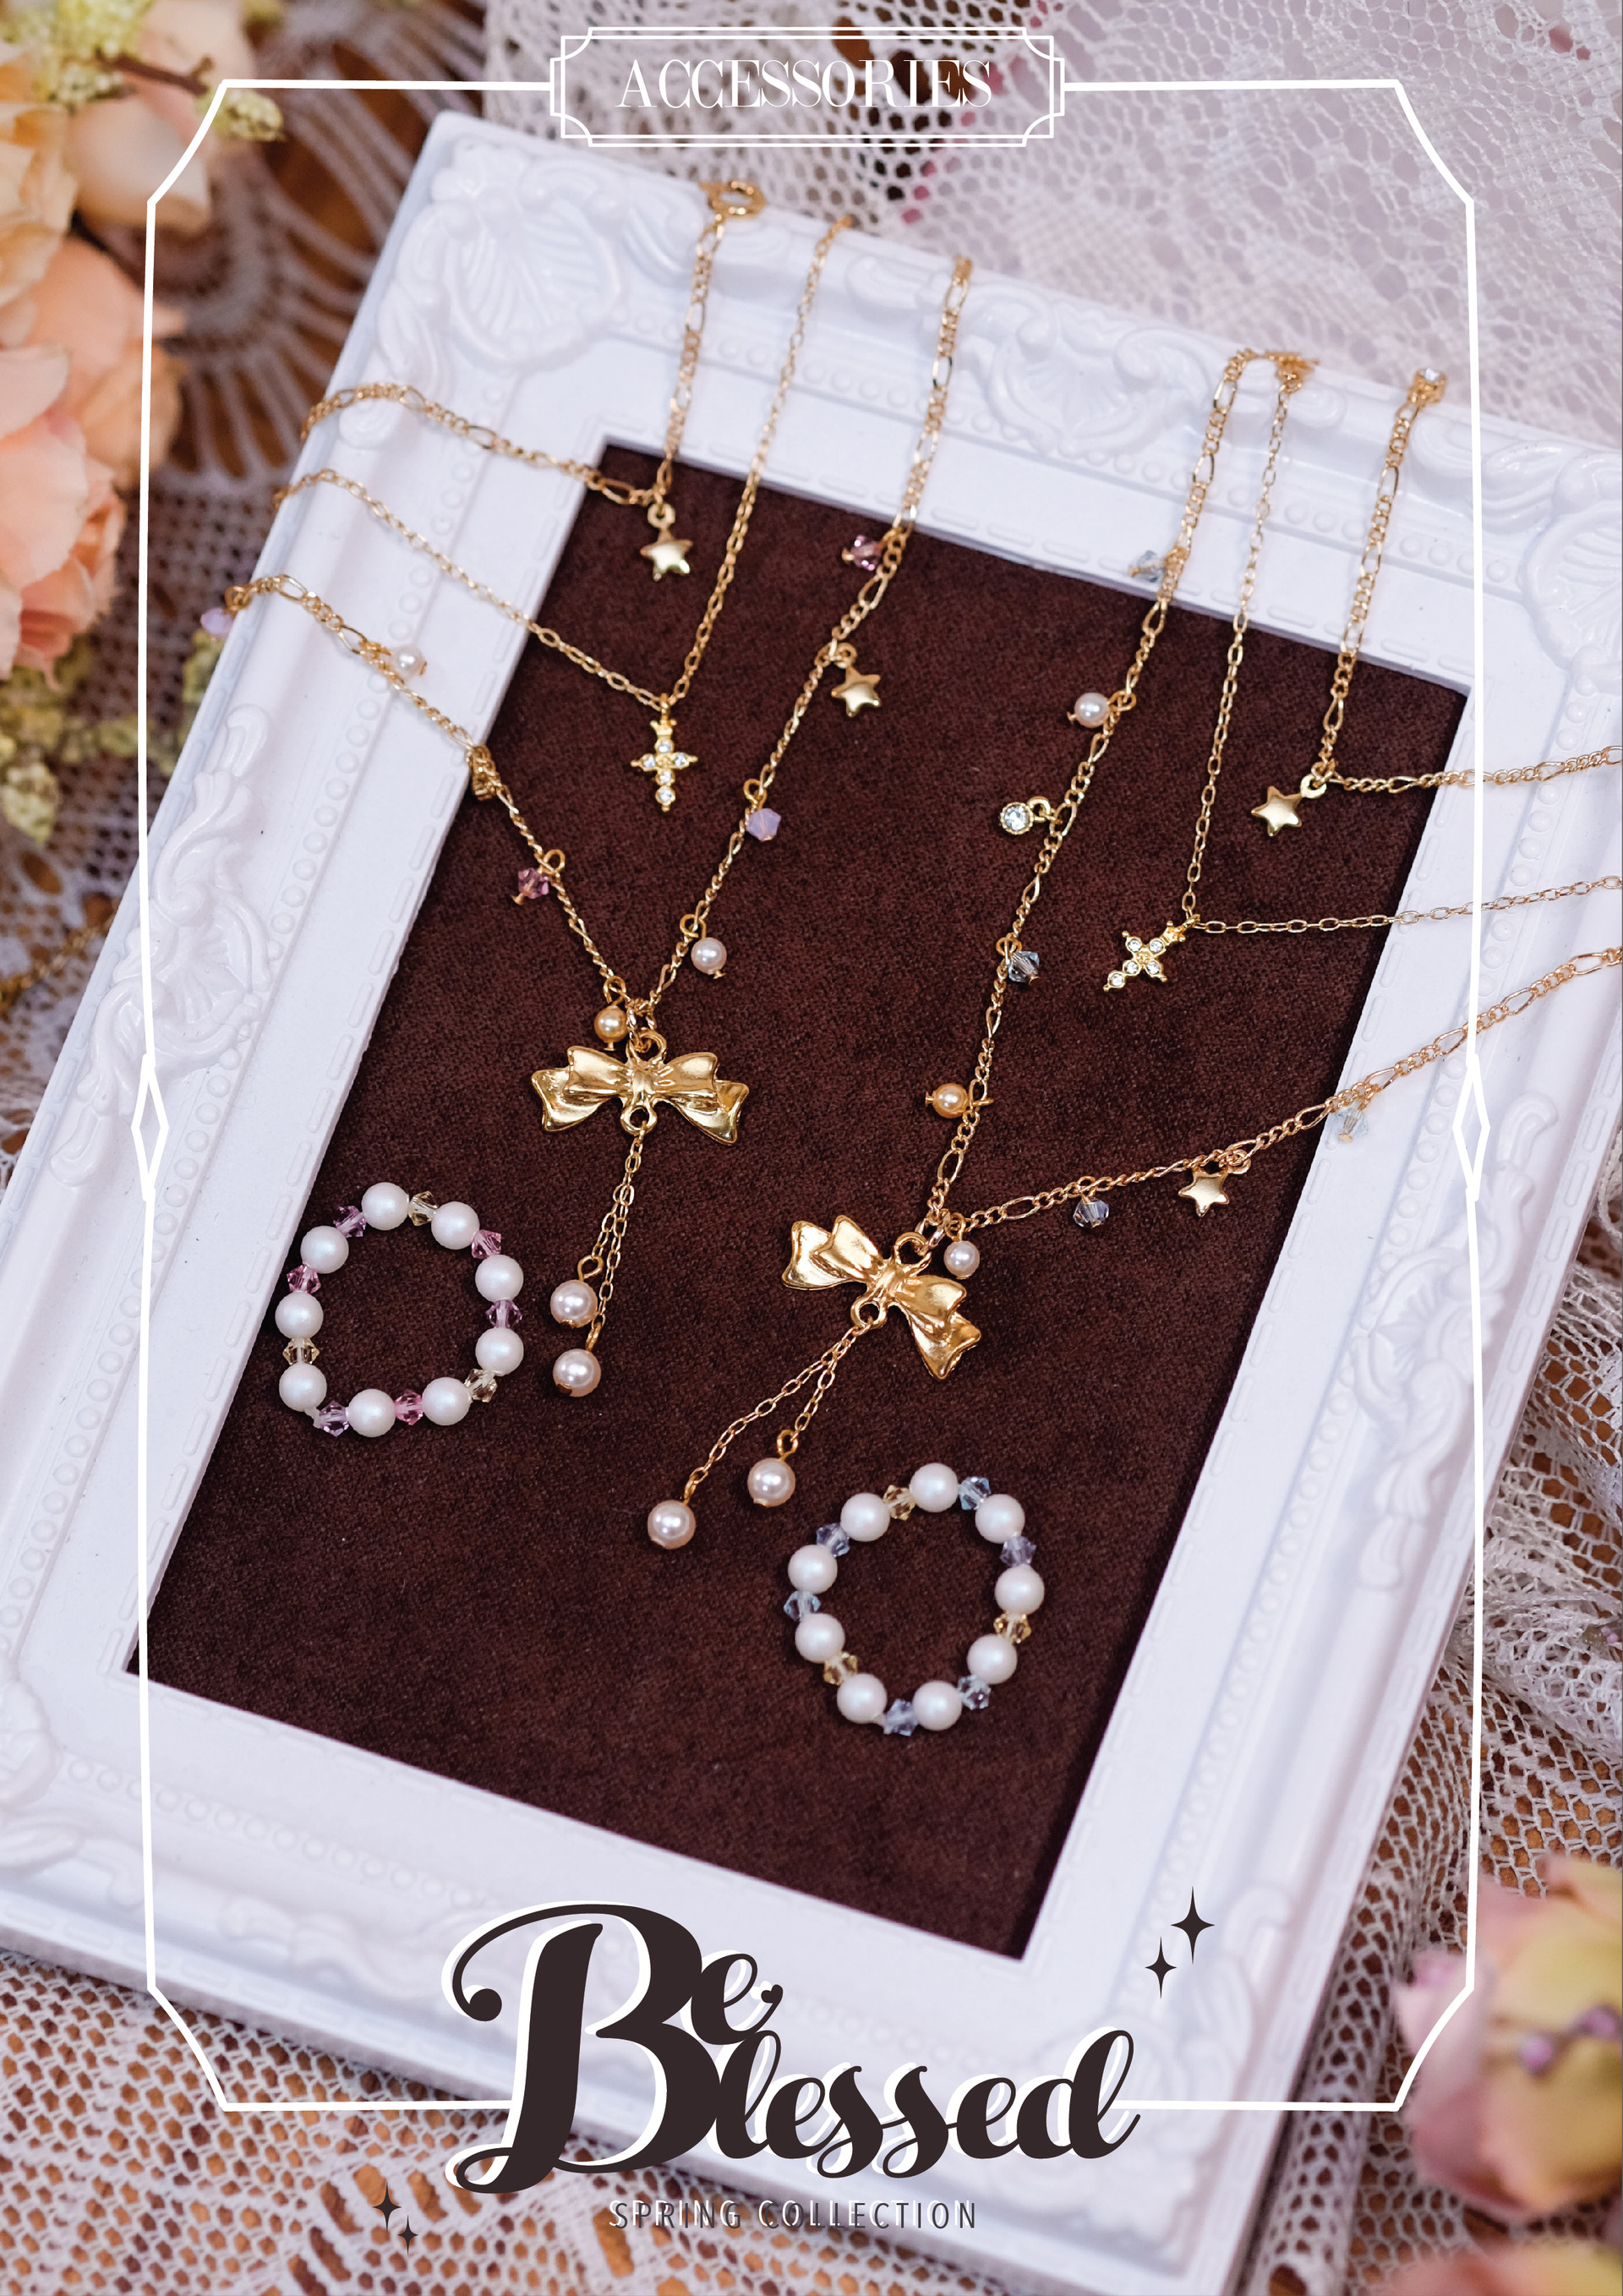 Be Blessed accessories